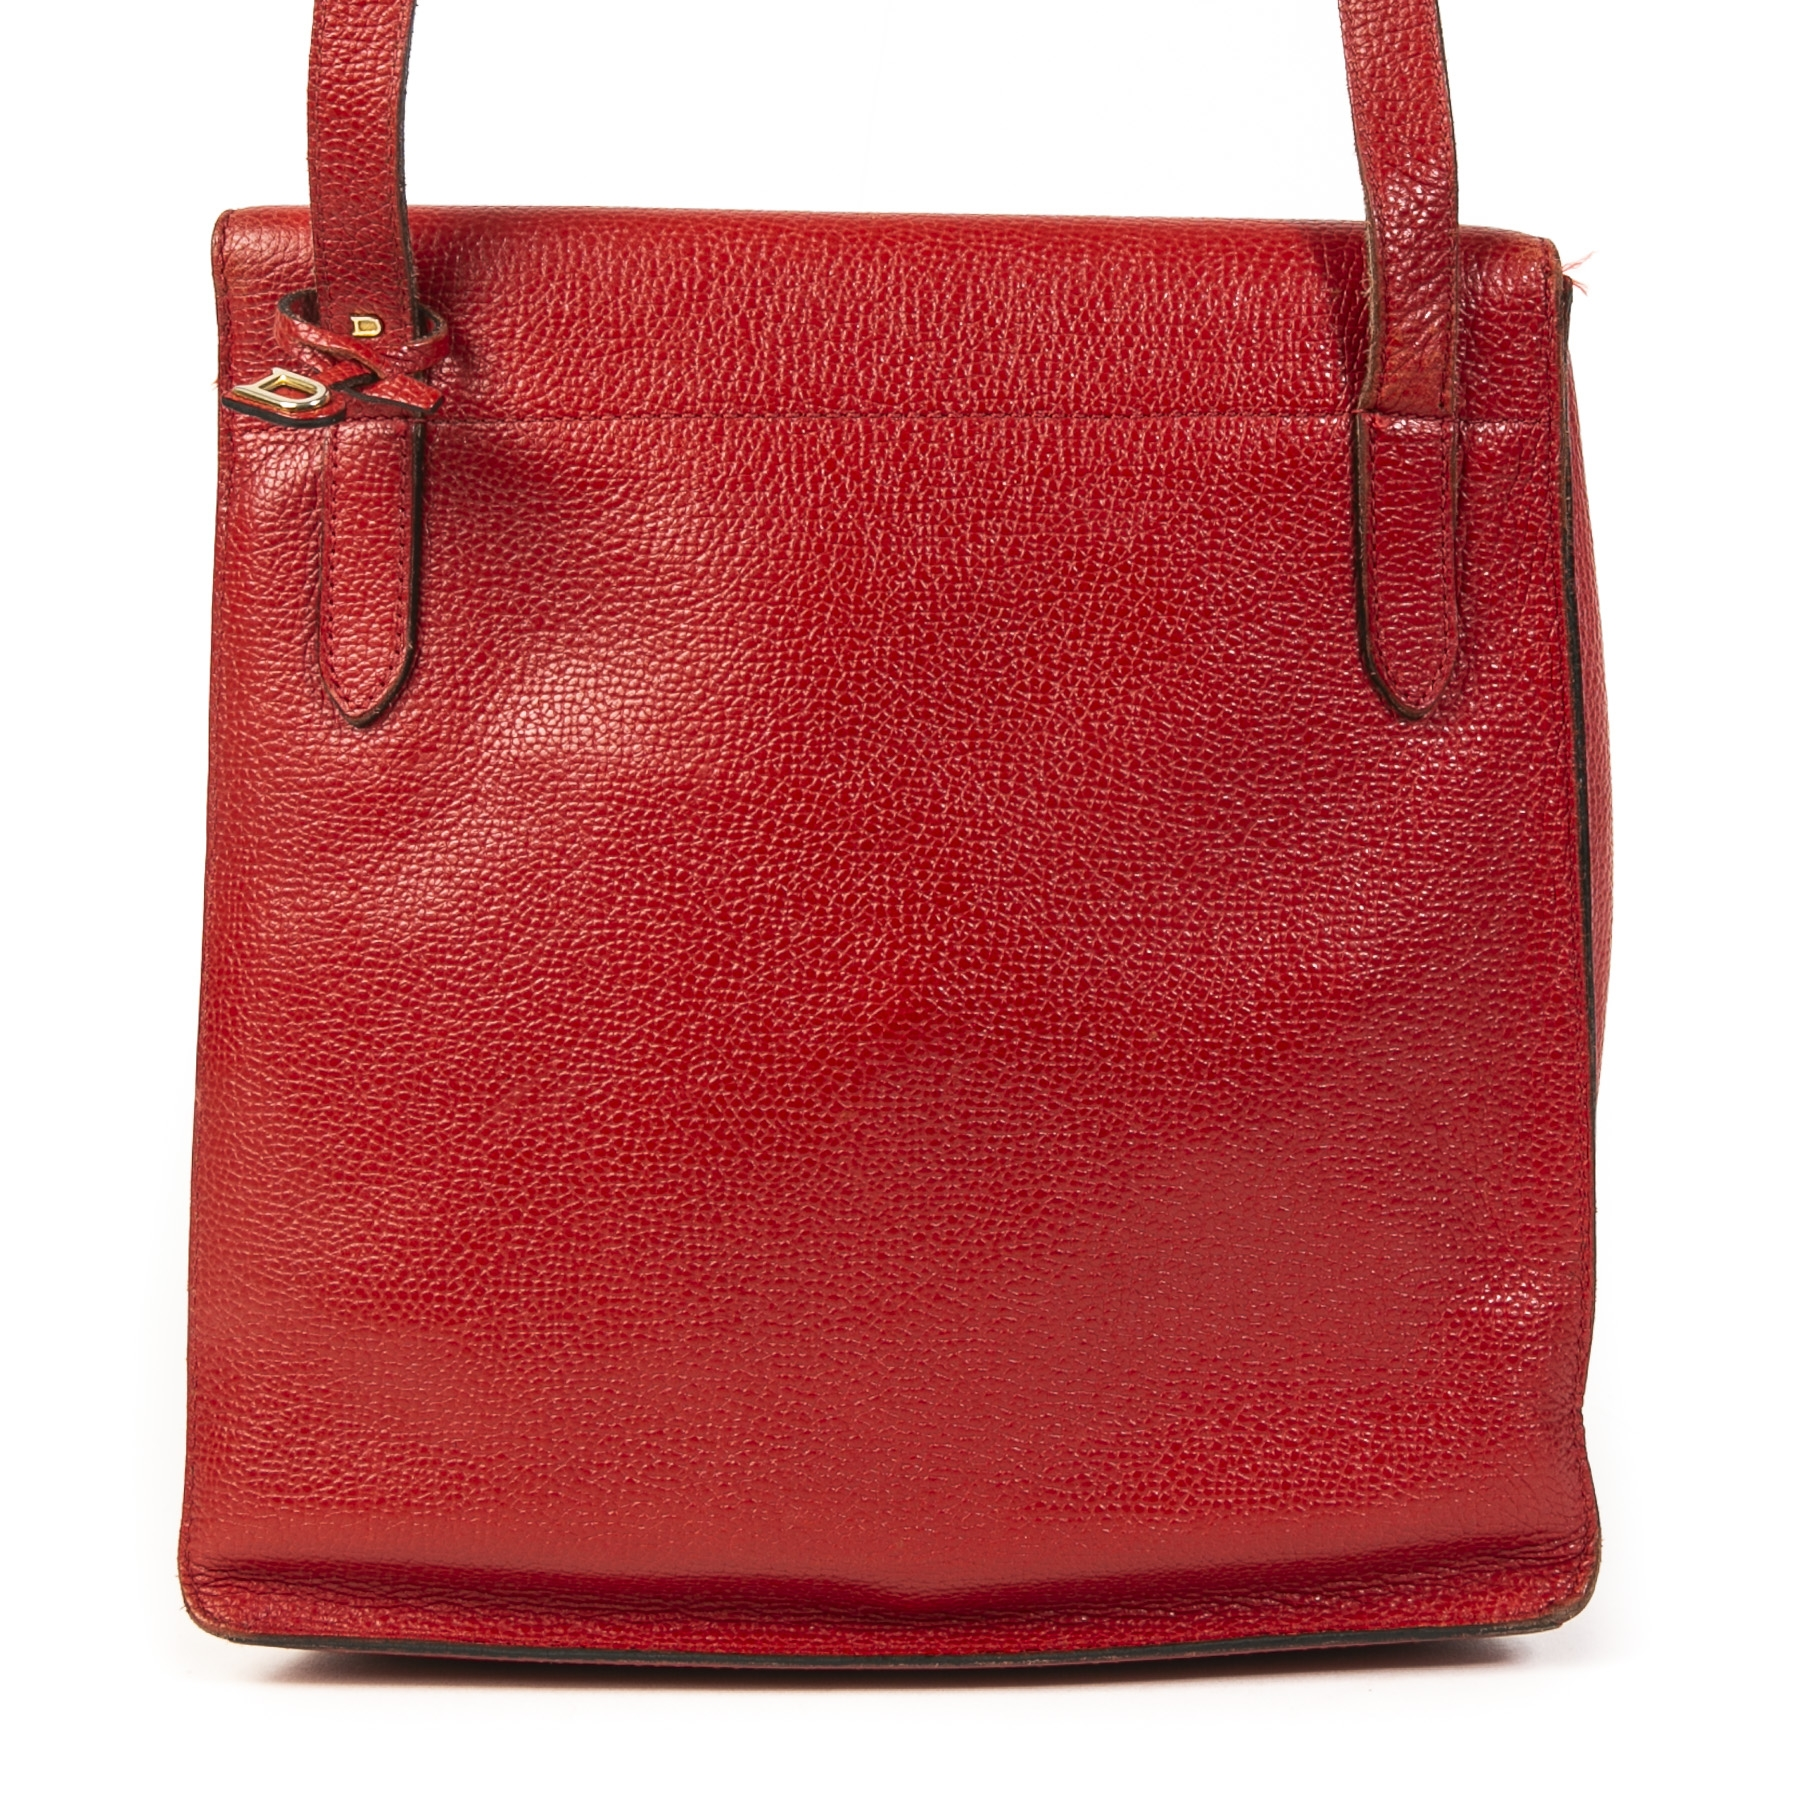 Authentic second-hand vintage Delvaux Rubis Red Crossbody Bag buy online webshop LabelLOV